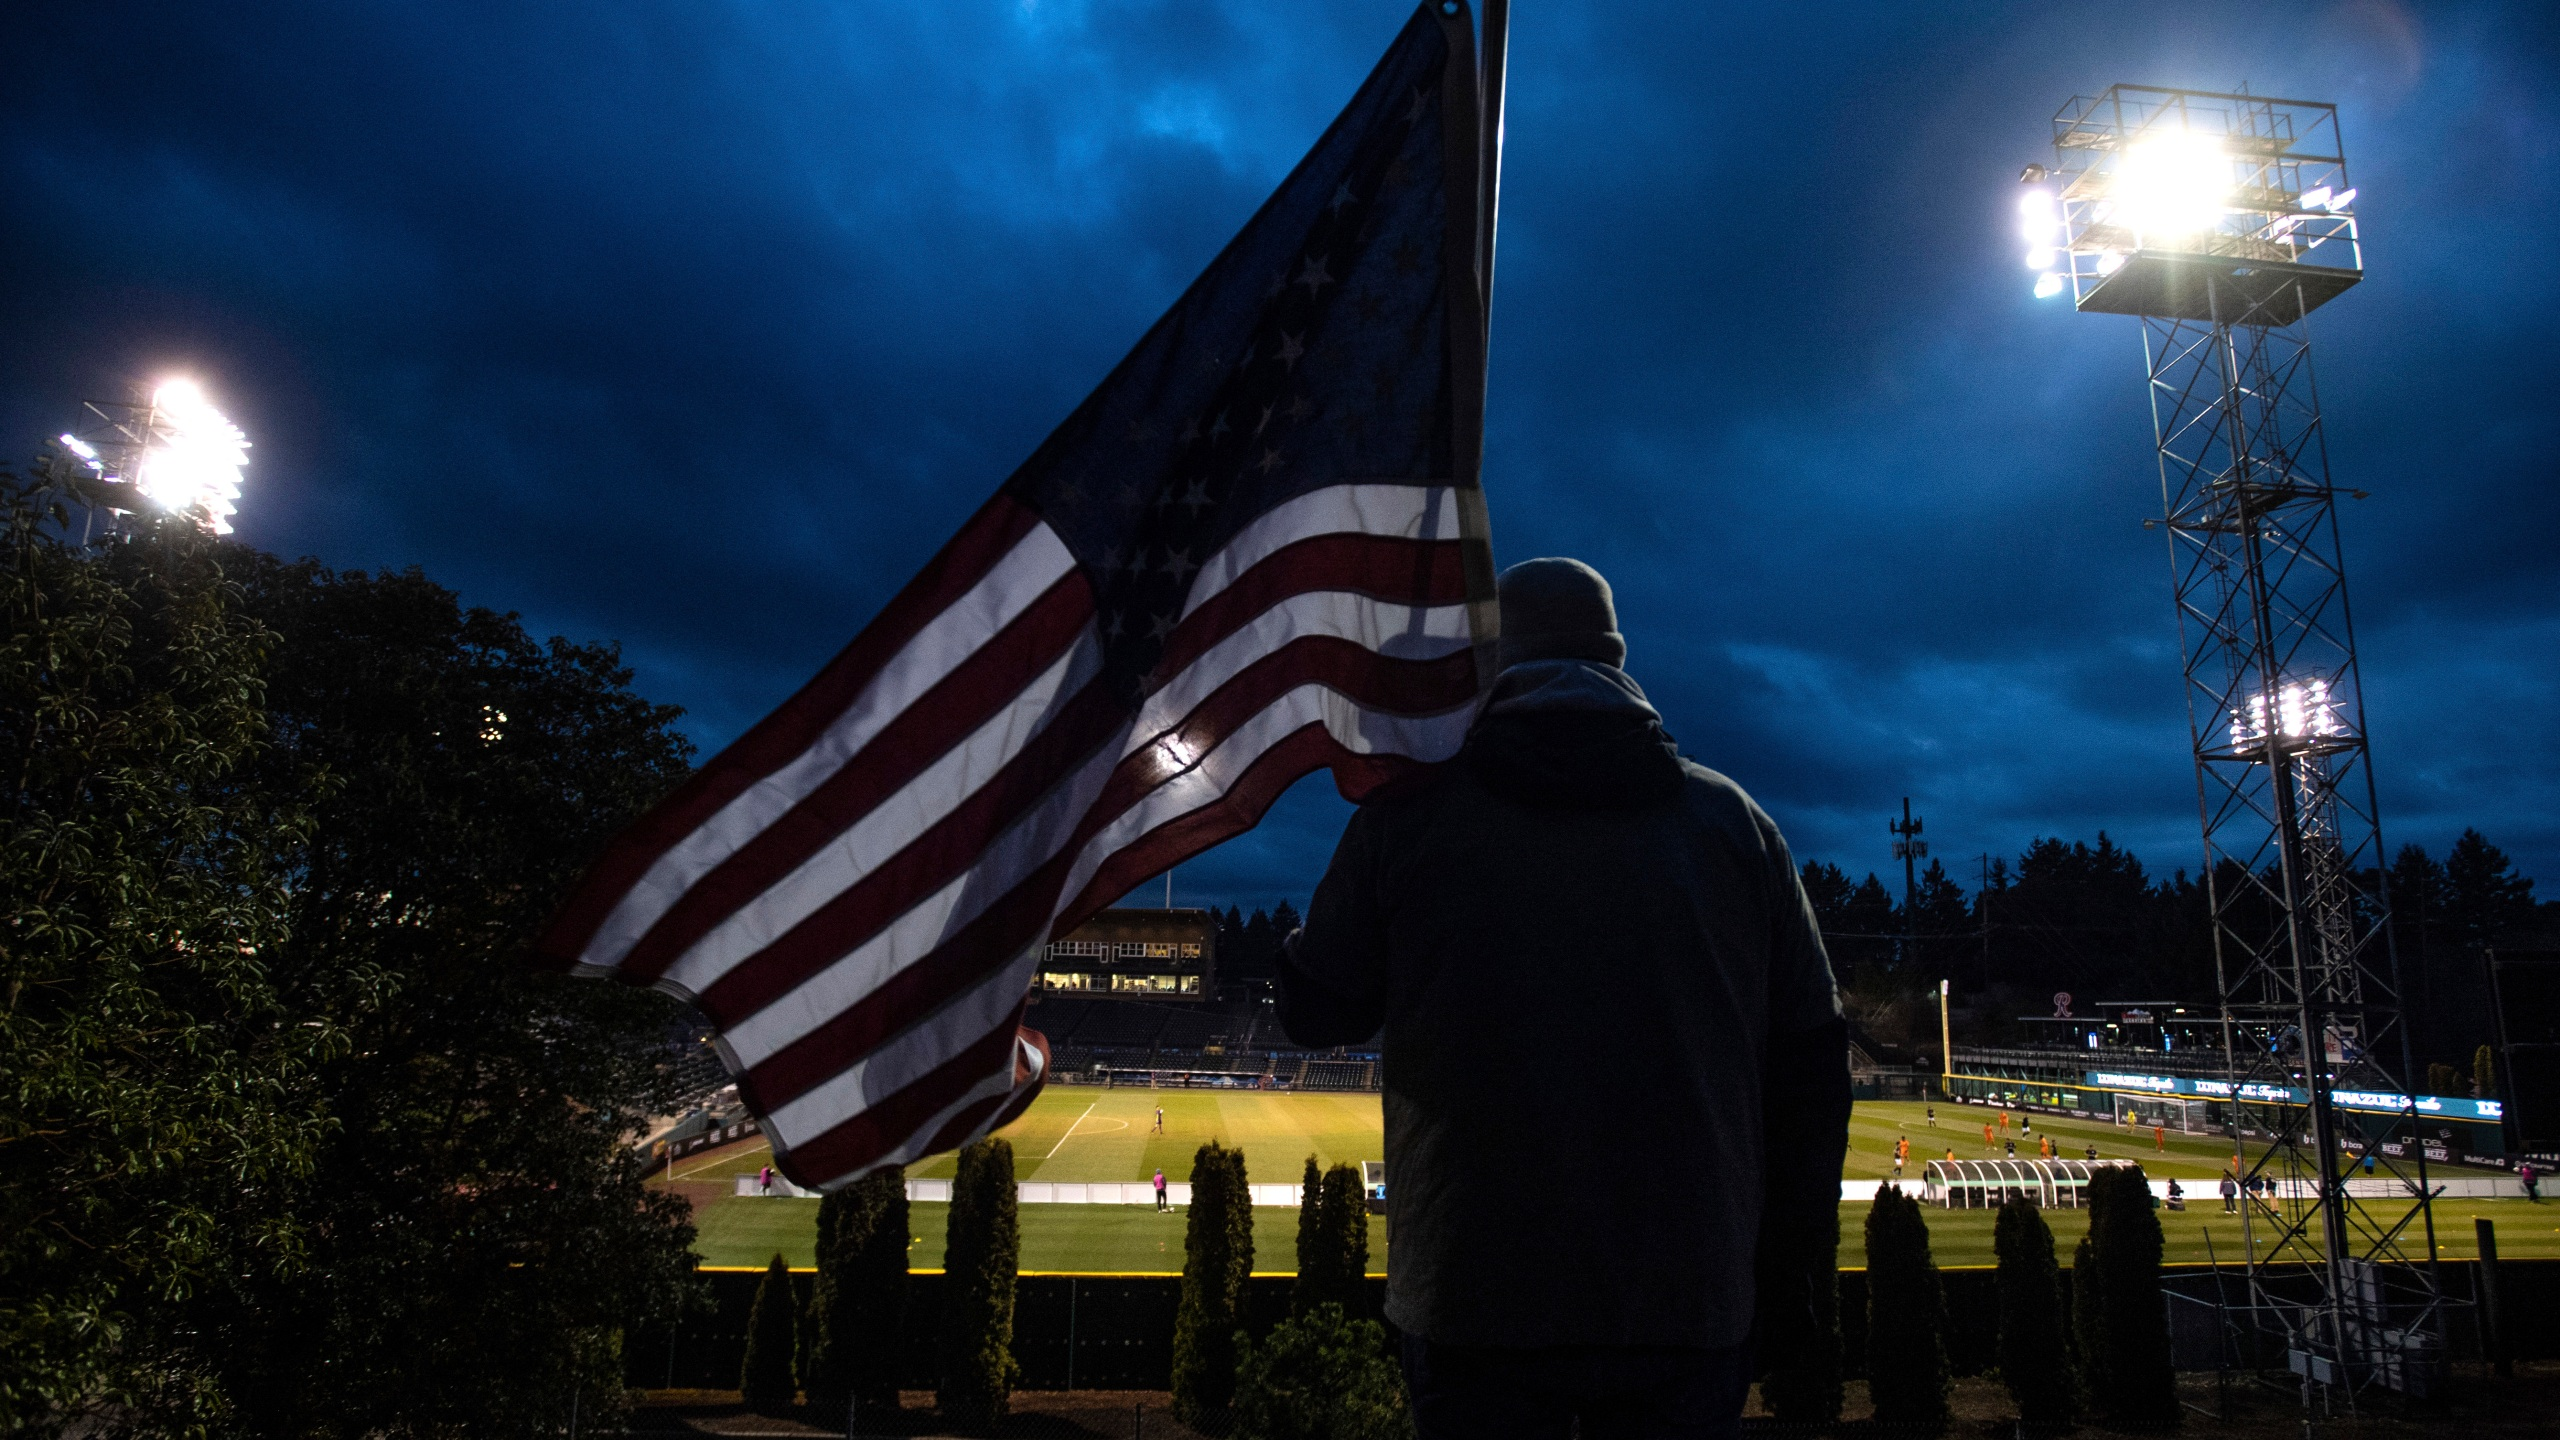 A man holds an U.S. flag as he watches the a United Soccer League match in Tacoma, Wash. on March 11. In a matter of days, millions of Americans have seen their lives upended by measures to curb the spread of the new coronavirus in mid-March. (Joshua Bessex/The News Tribune via AP)